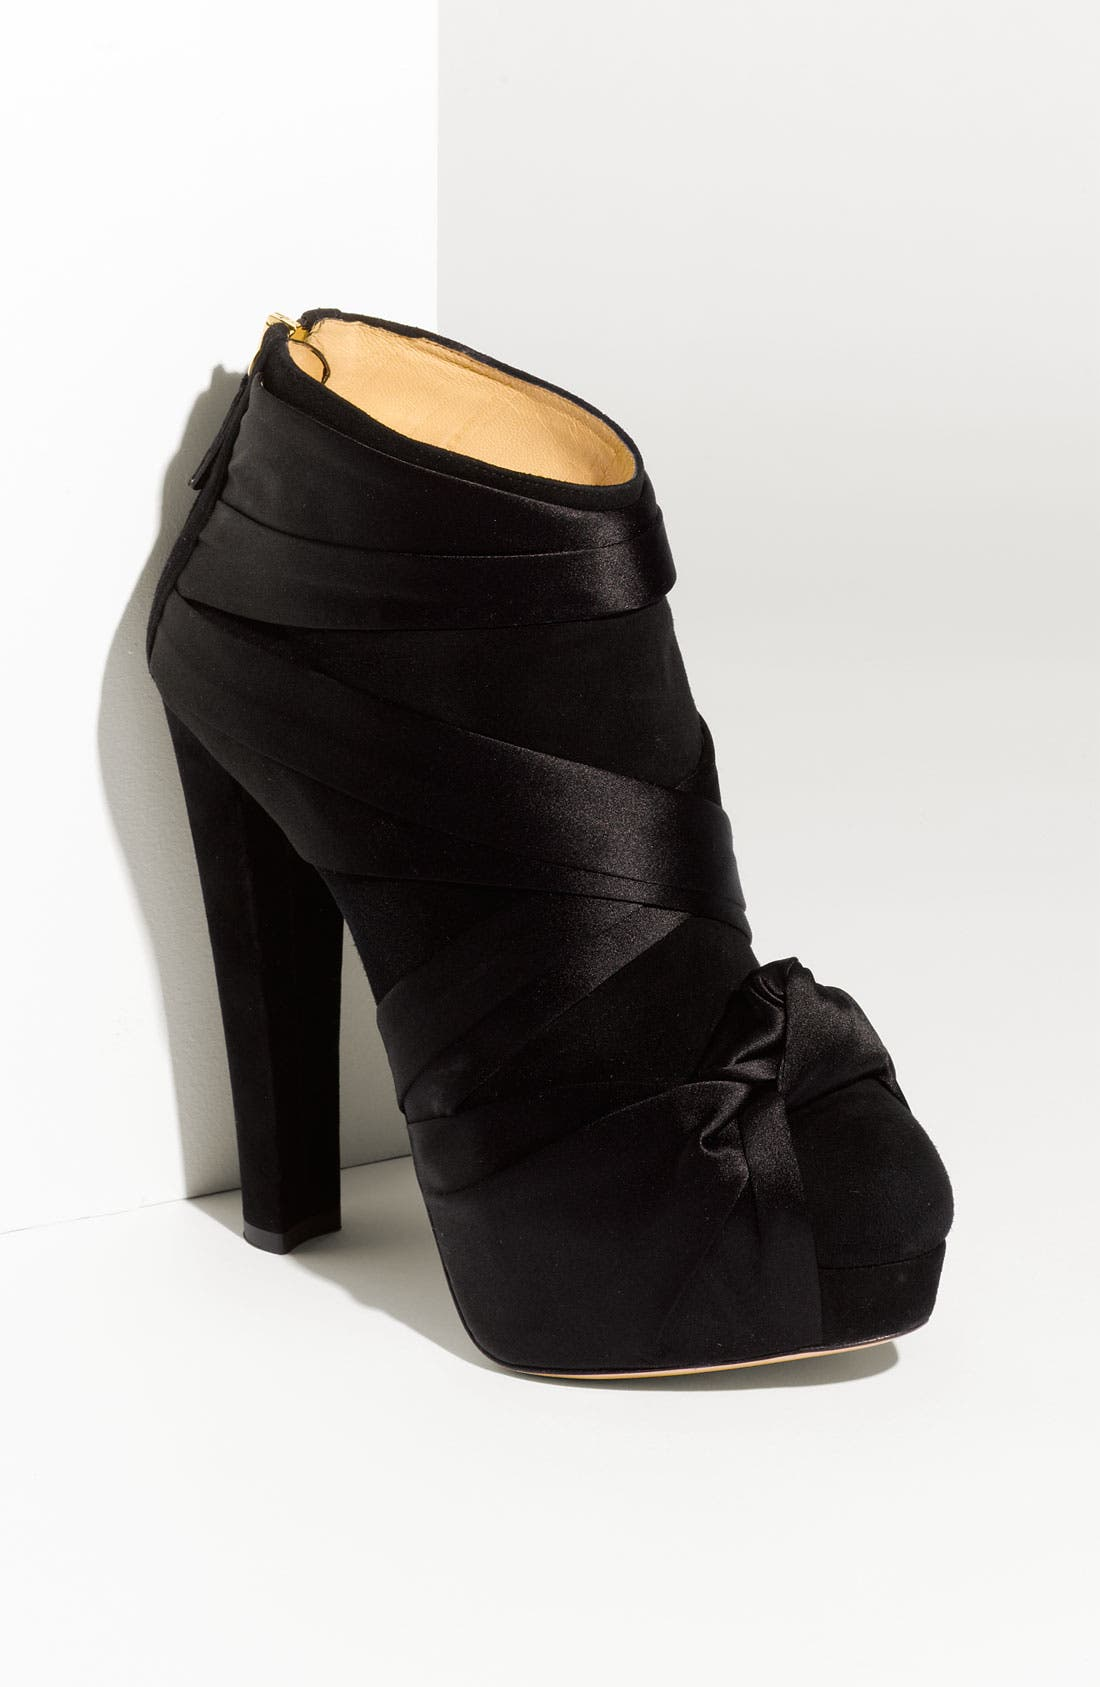 Alternate Image 1 Selected - Charlotte Olympia Satin Knot Suede Ankle Boot